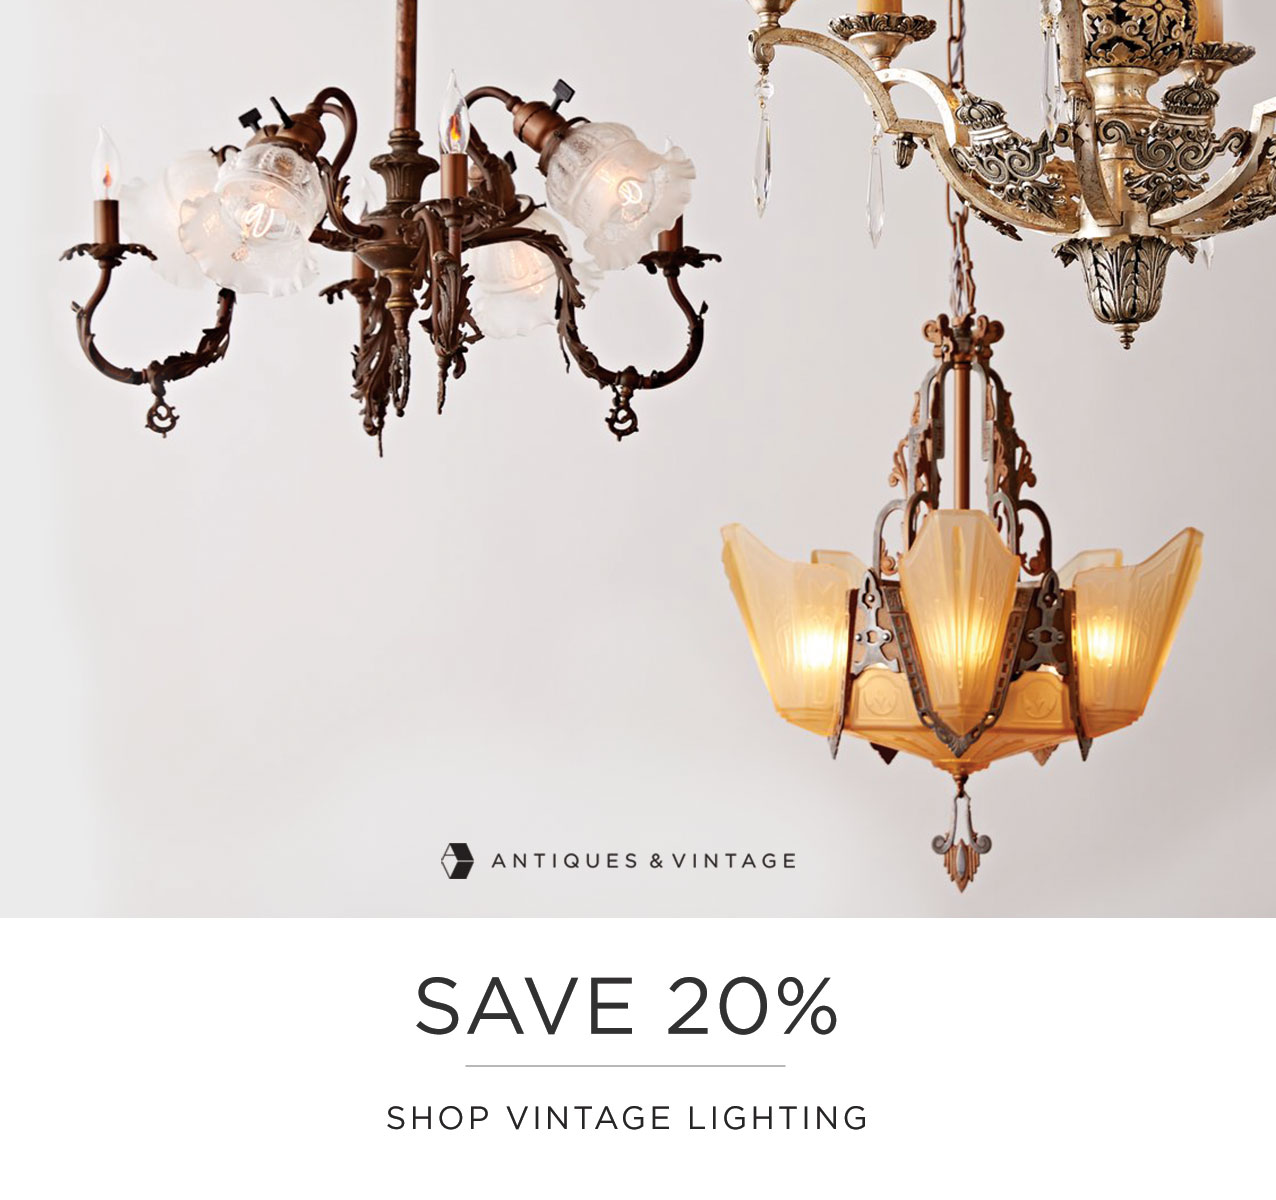 Shop Antiques & Vintage Sale Lighting